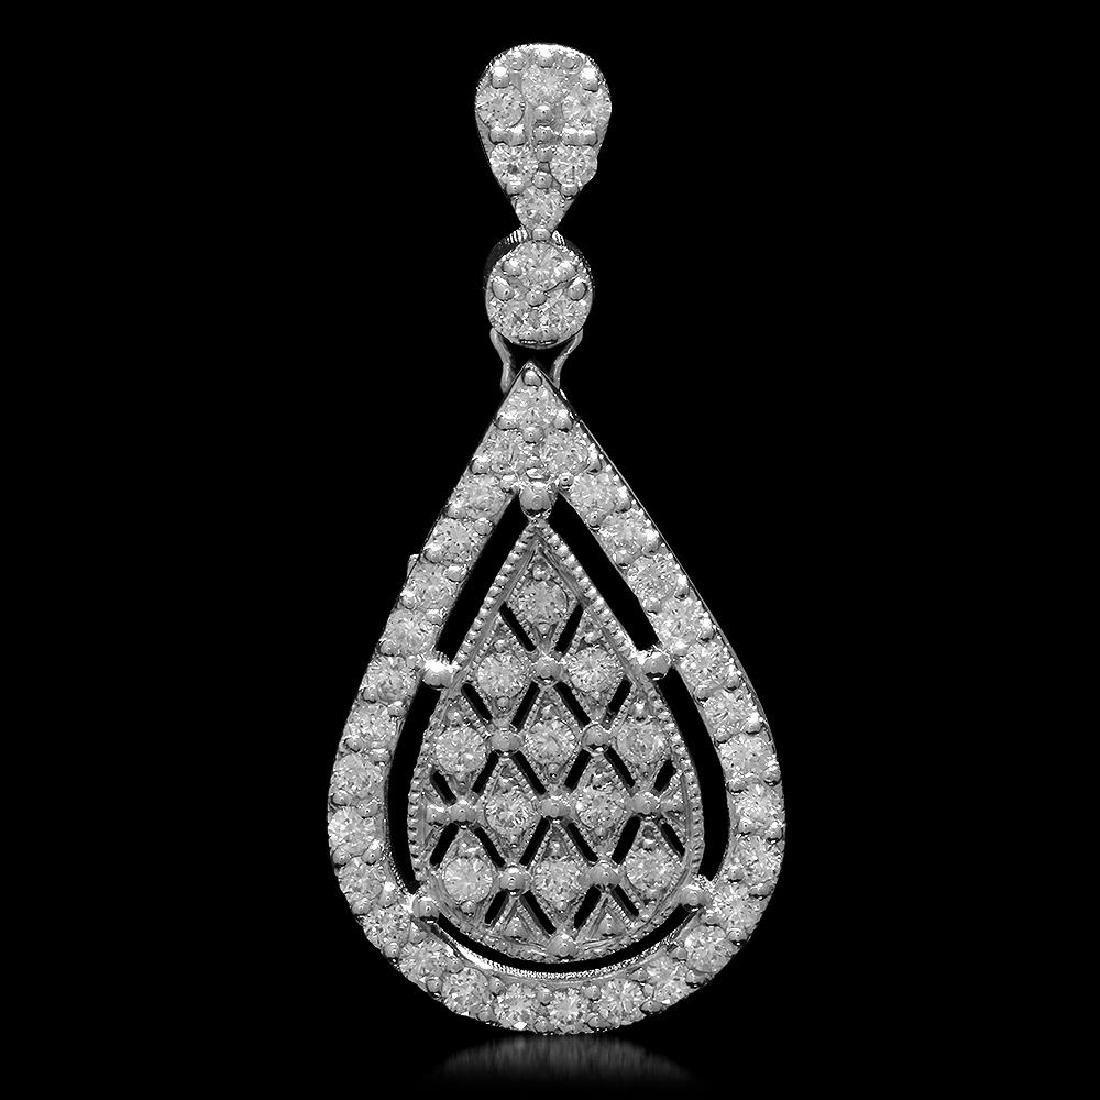 14K Gold 1.35ct Diamond Pendant